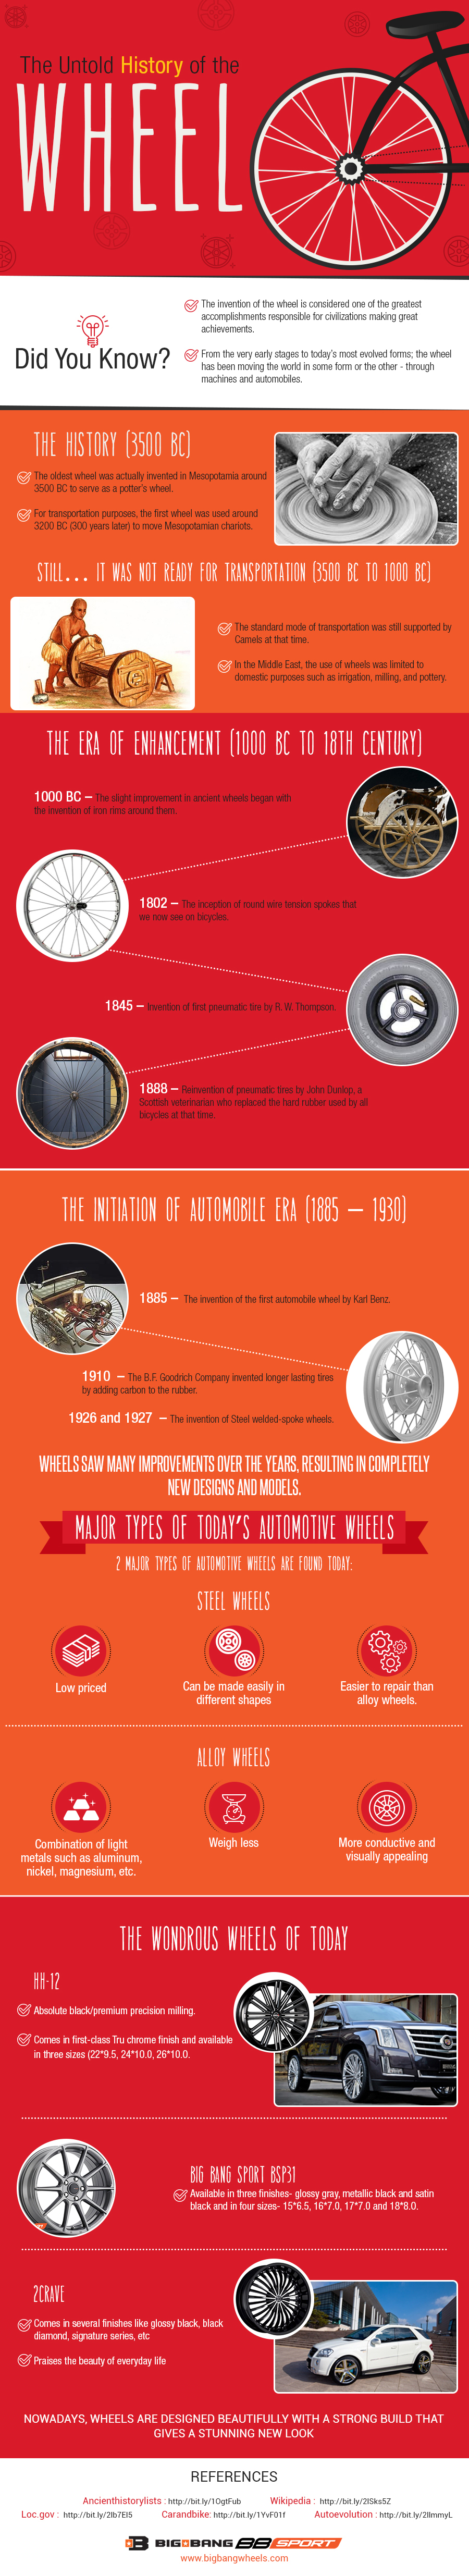 history of the wheel infographic